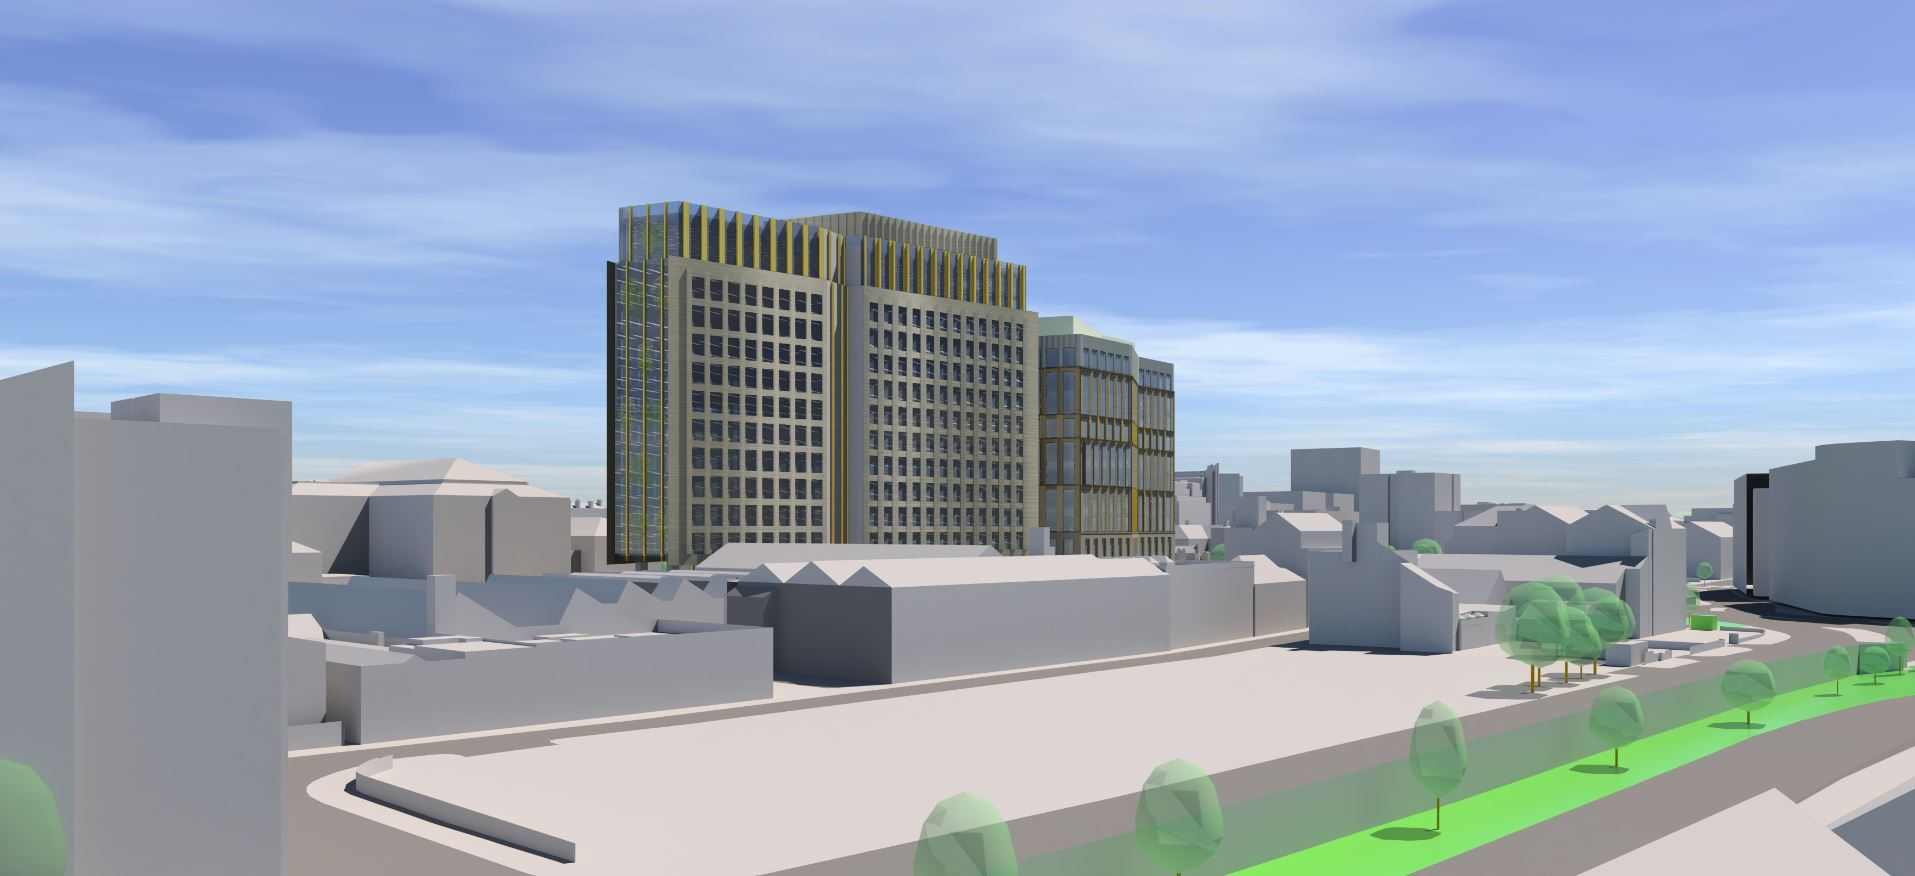 PLANNING GOES IN FOR 10 & 13 STOREY OFFICE DEVELOPMENT SET TO CHANGE NOTTINGHAM LANDSCAPE & CREATE THOUSANDS OF JOBS